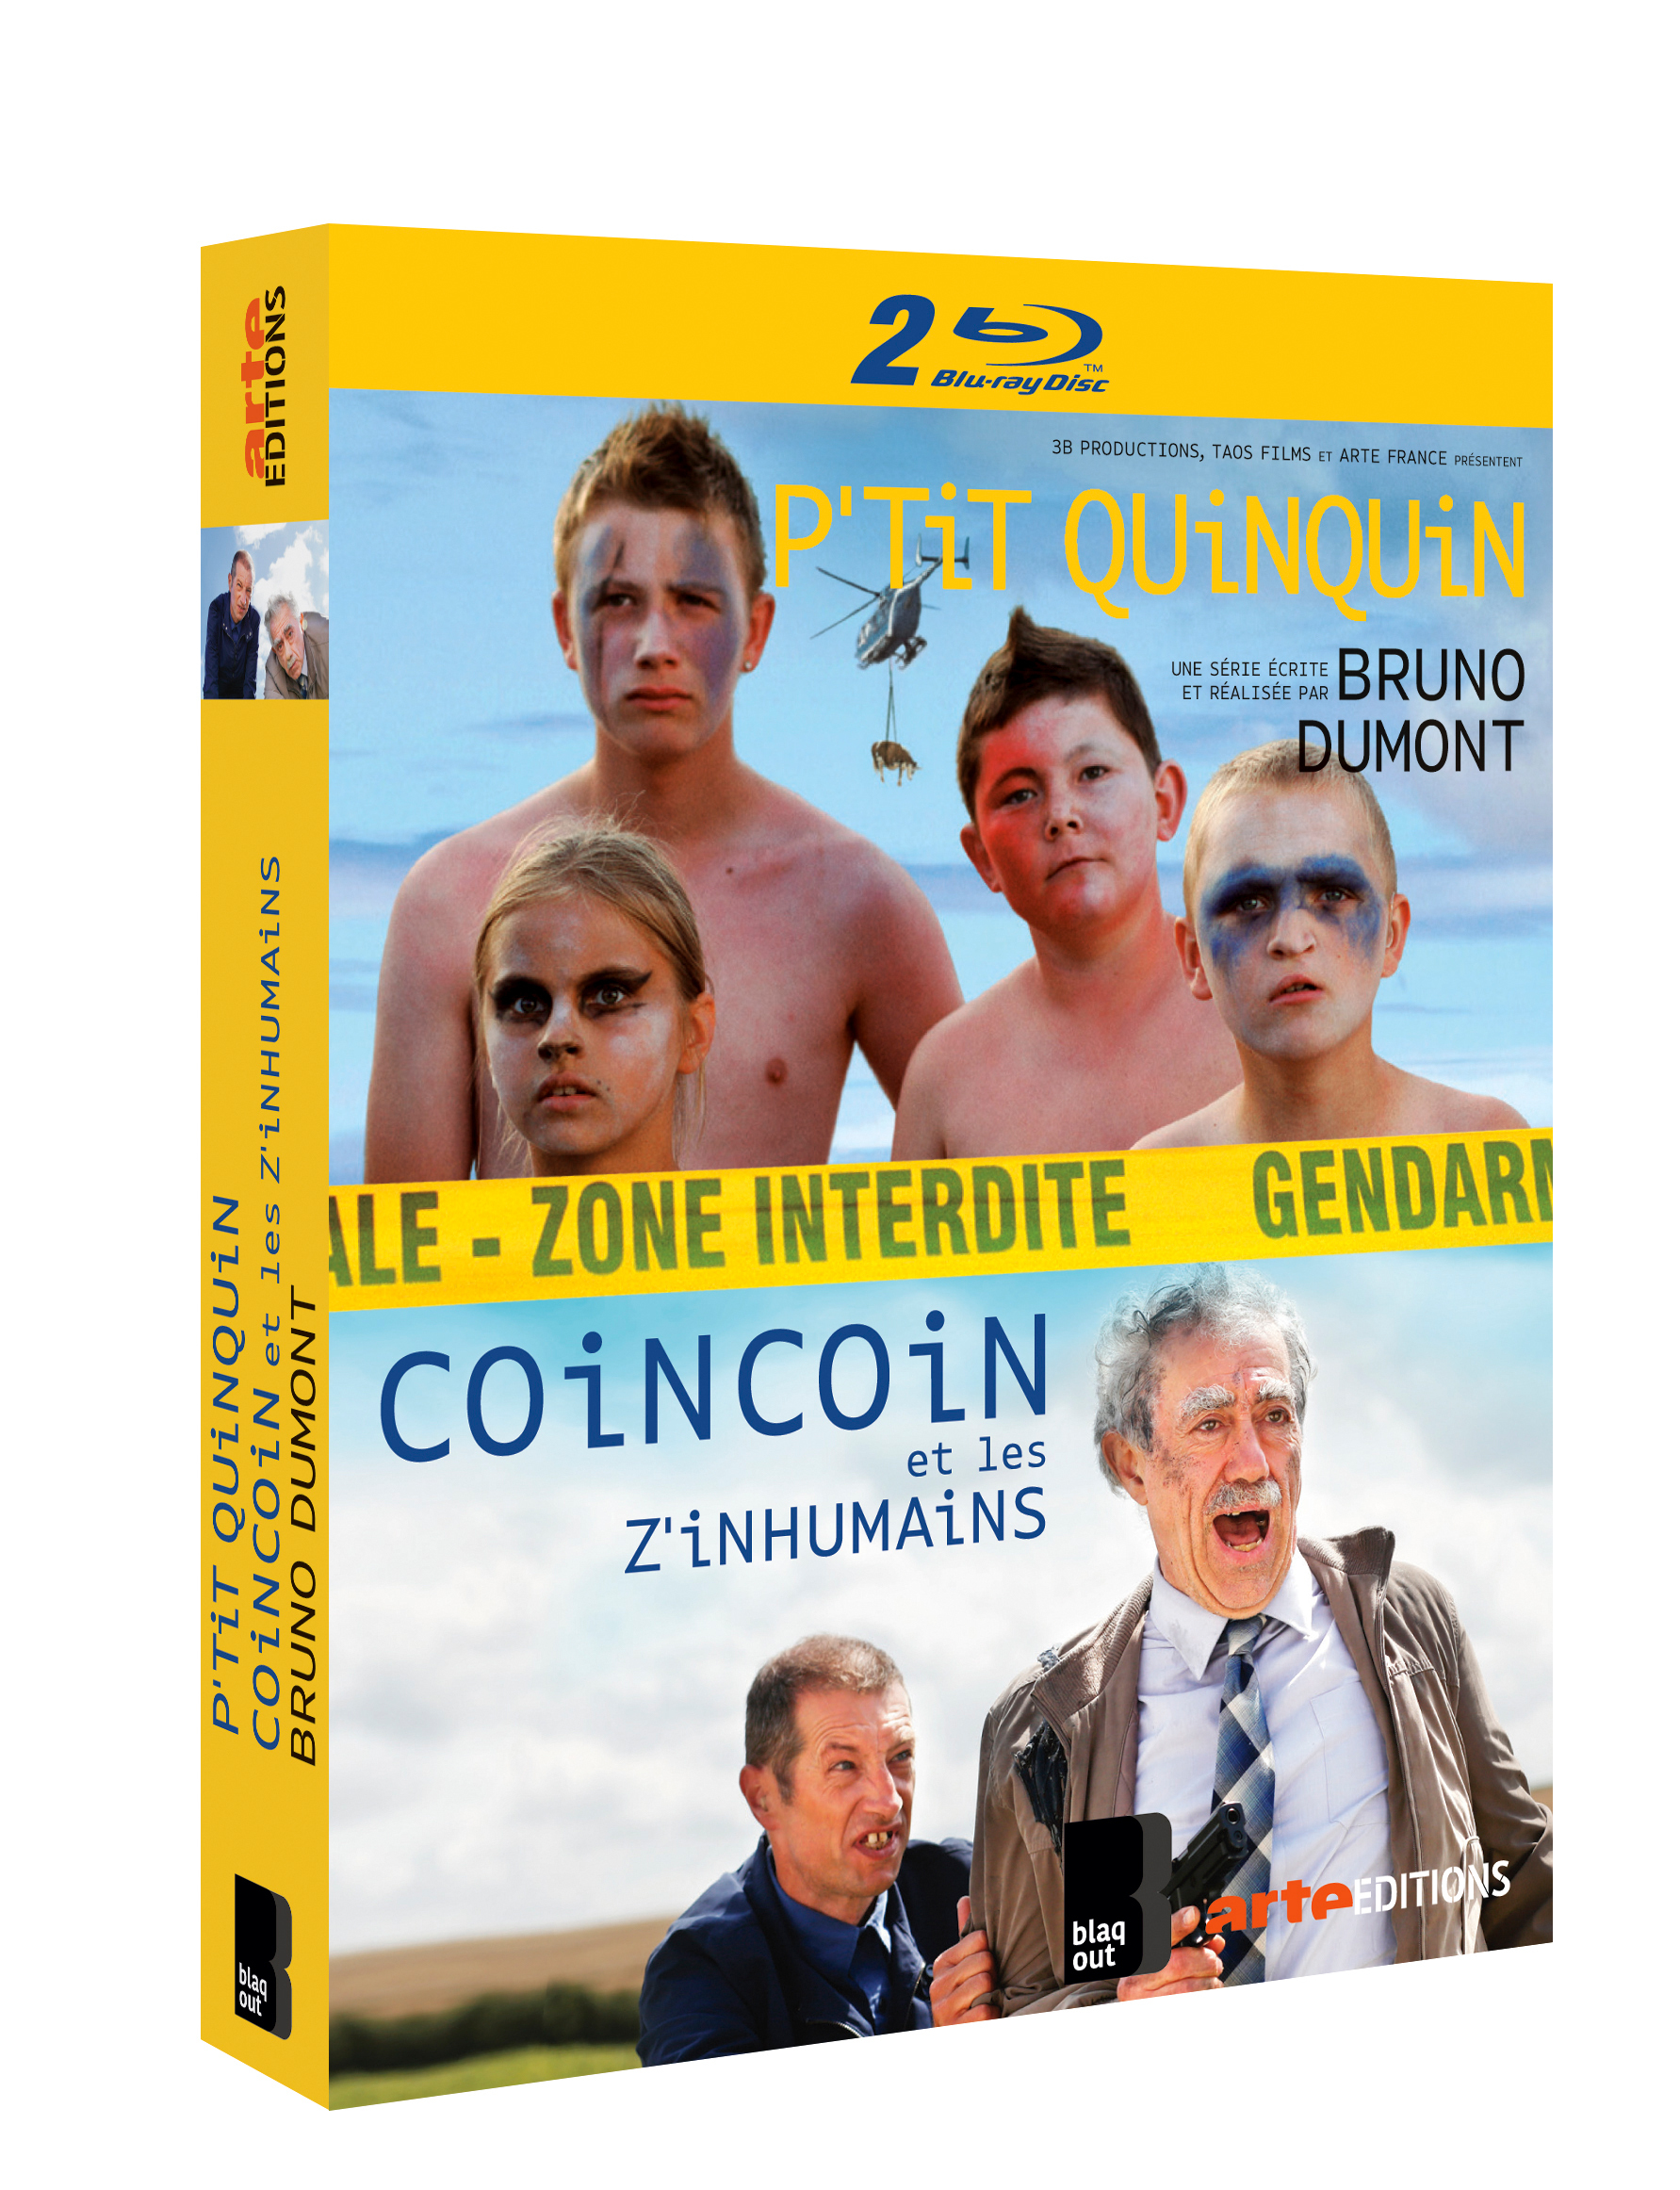 P'TIT QUINQUIN + COIN COIN ET LES Z'INHUMAINS - 4 BLU-RAY